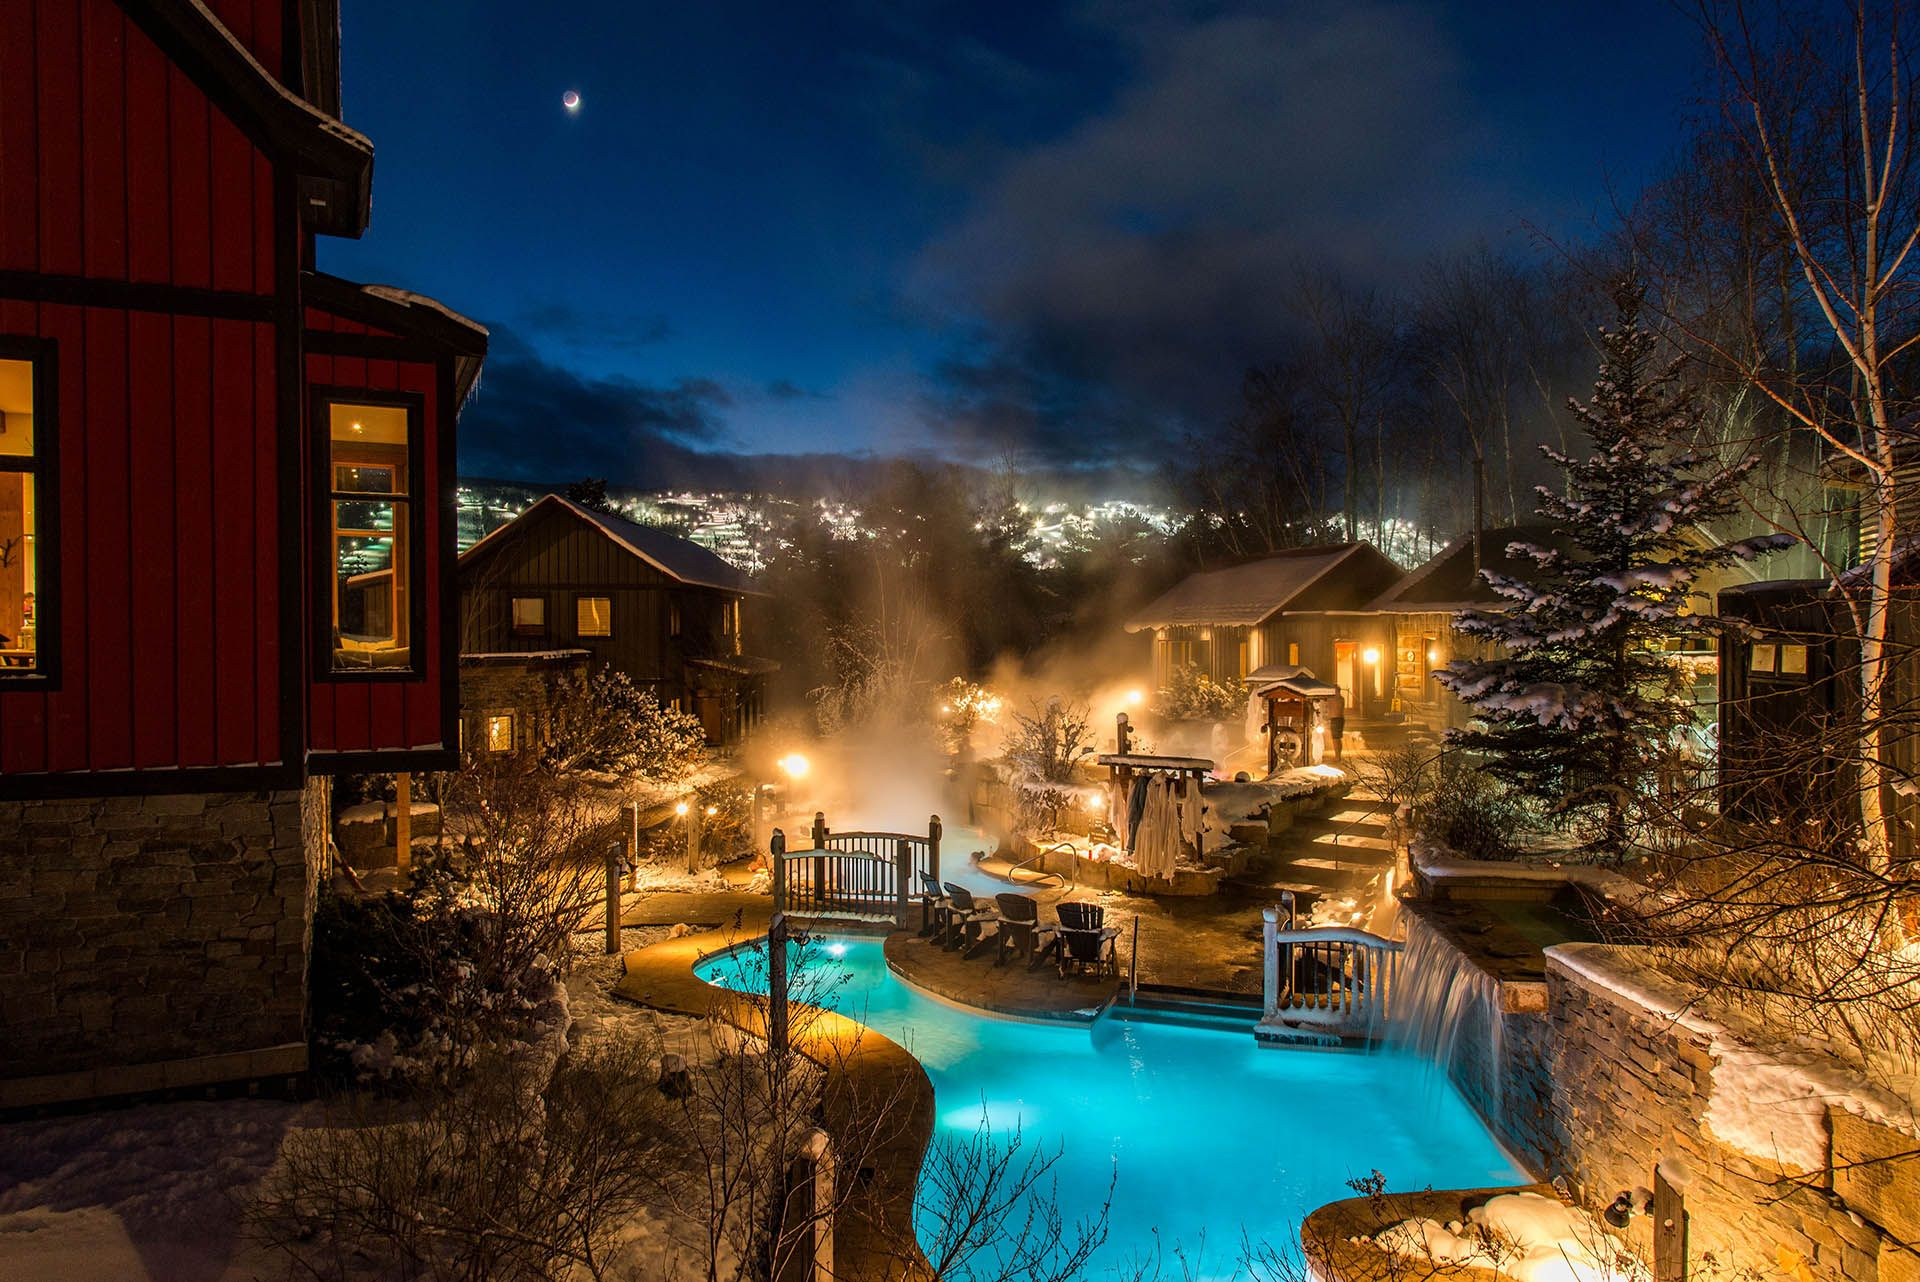 Rejuvenate At Our Peaceful Blue Mountain Spa Scandinave Spa Blue Mountain Scandinave Spa Blue Mountain Luxury Spa Hotels Blue Mountain Mountain Resort